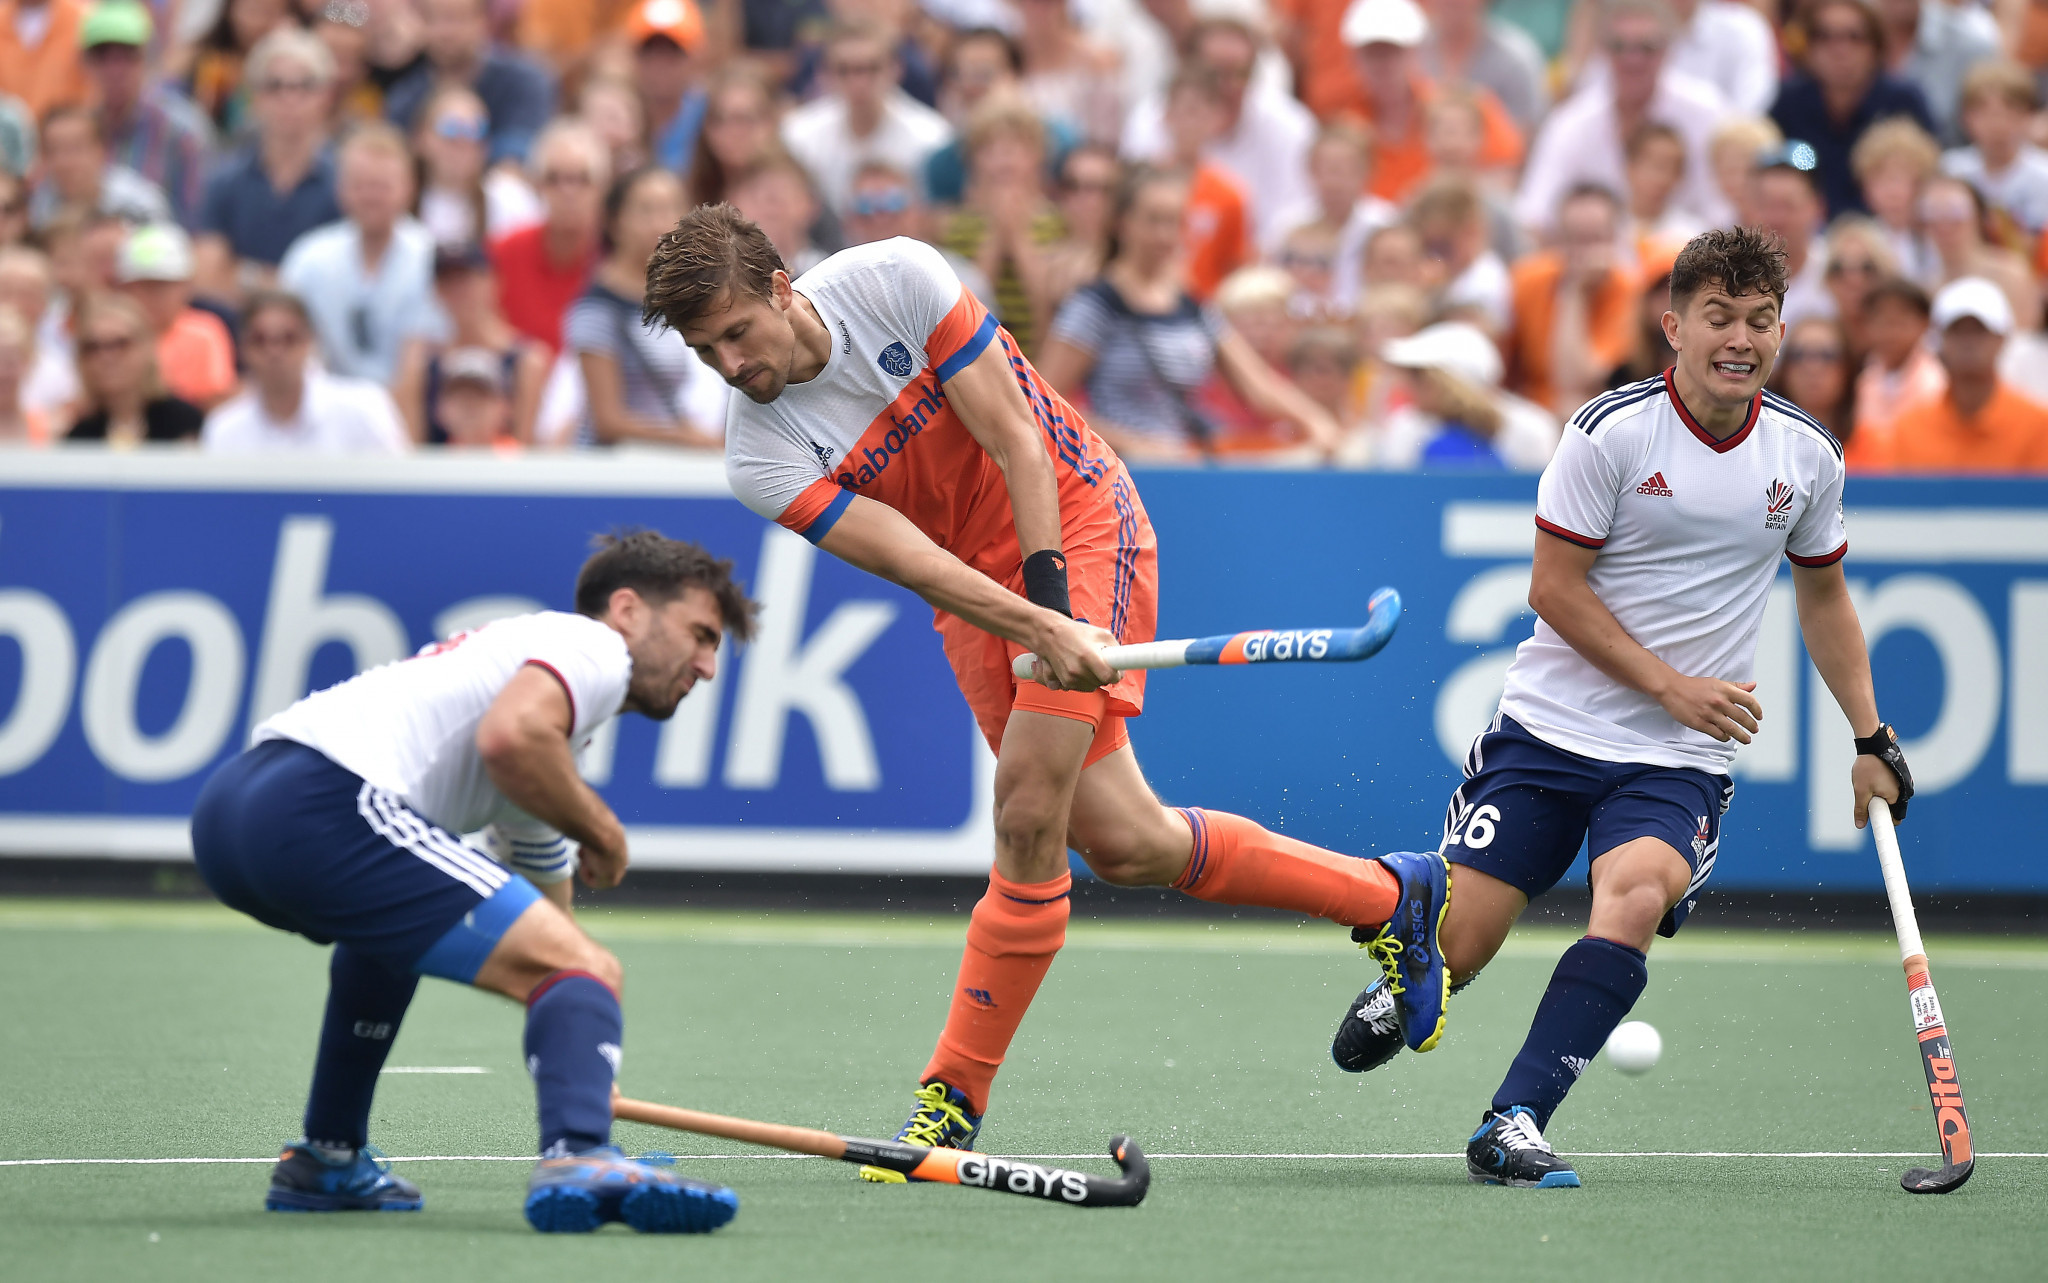 Dutch men win second shoot-out in two days in FIH Pro League